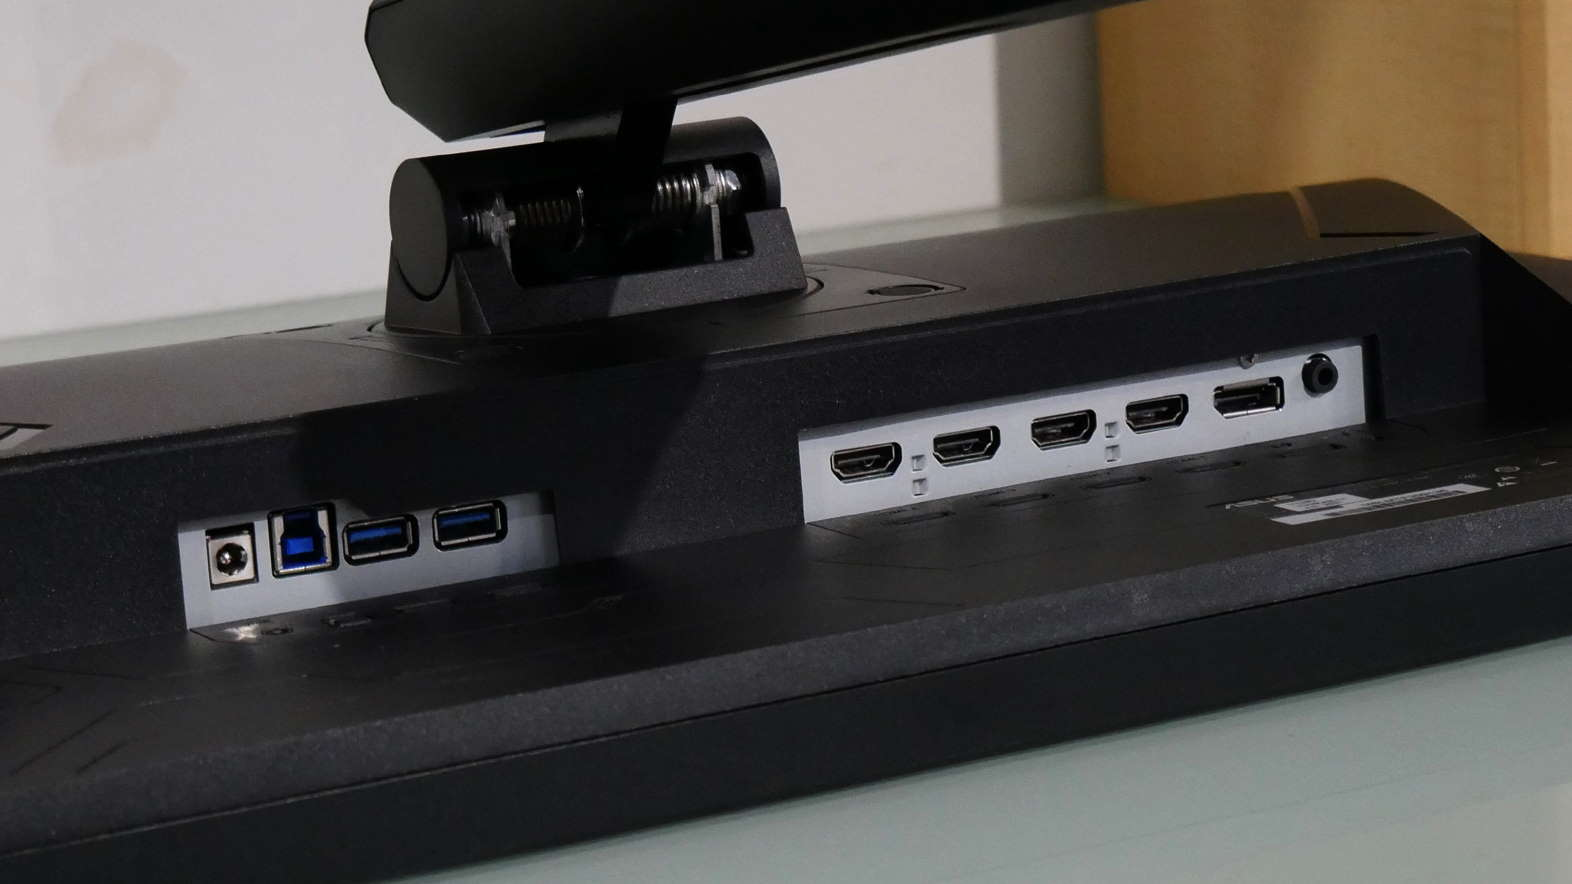 Asus TUF VG28UQL1A gaming monitor lying on its front to display the ports